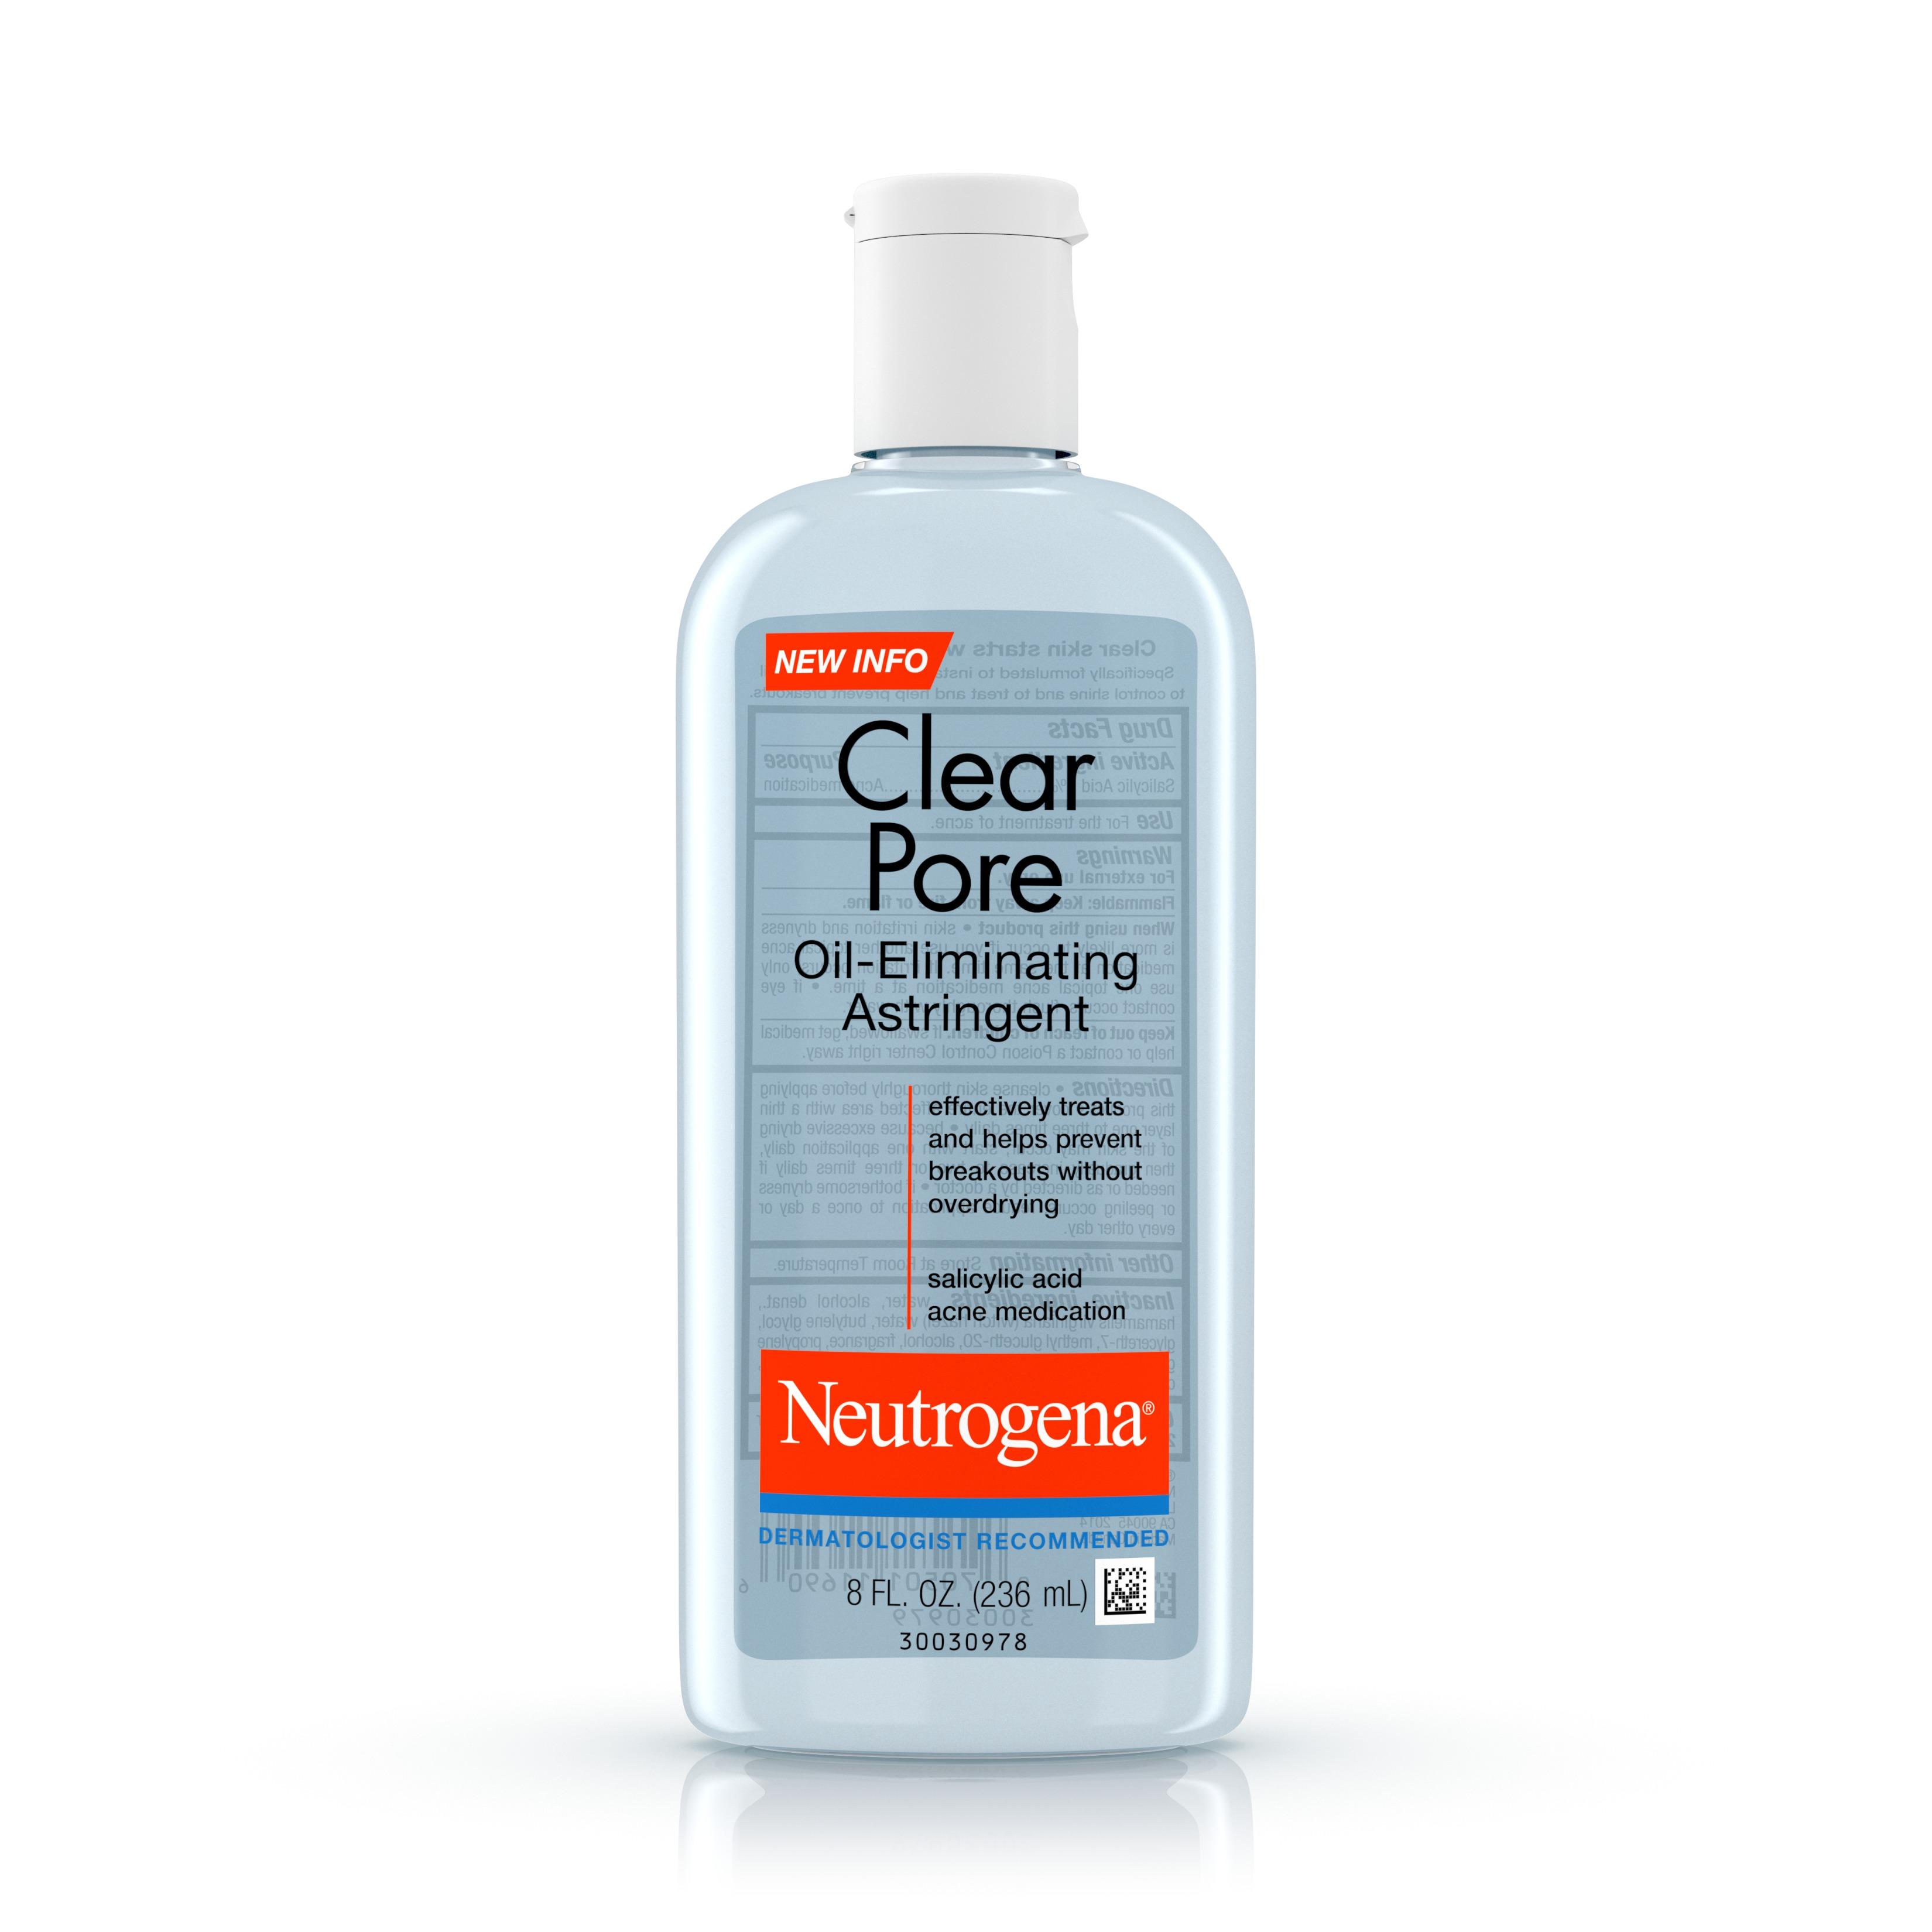 Neutrogena Clear Pore Oil-Eliminating Astringent With Salicylic Acid, 8 Fl. Oz. - Walmart.com